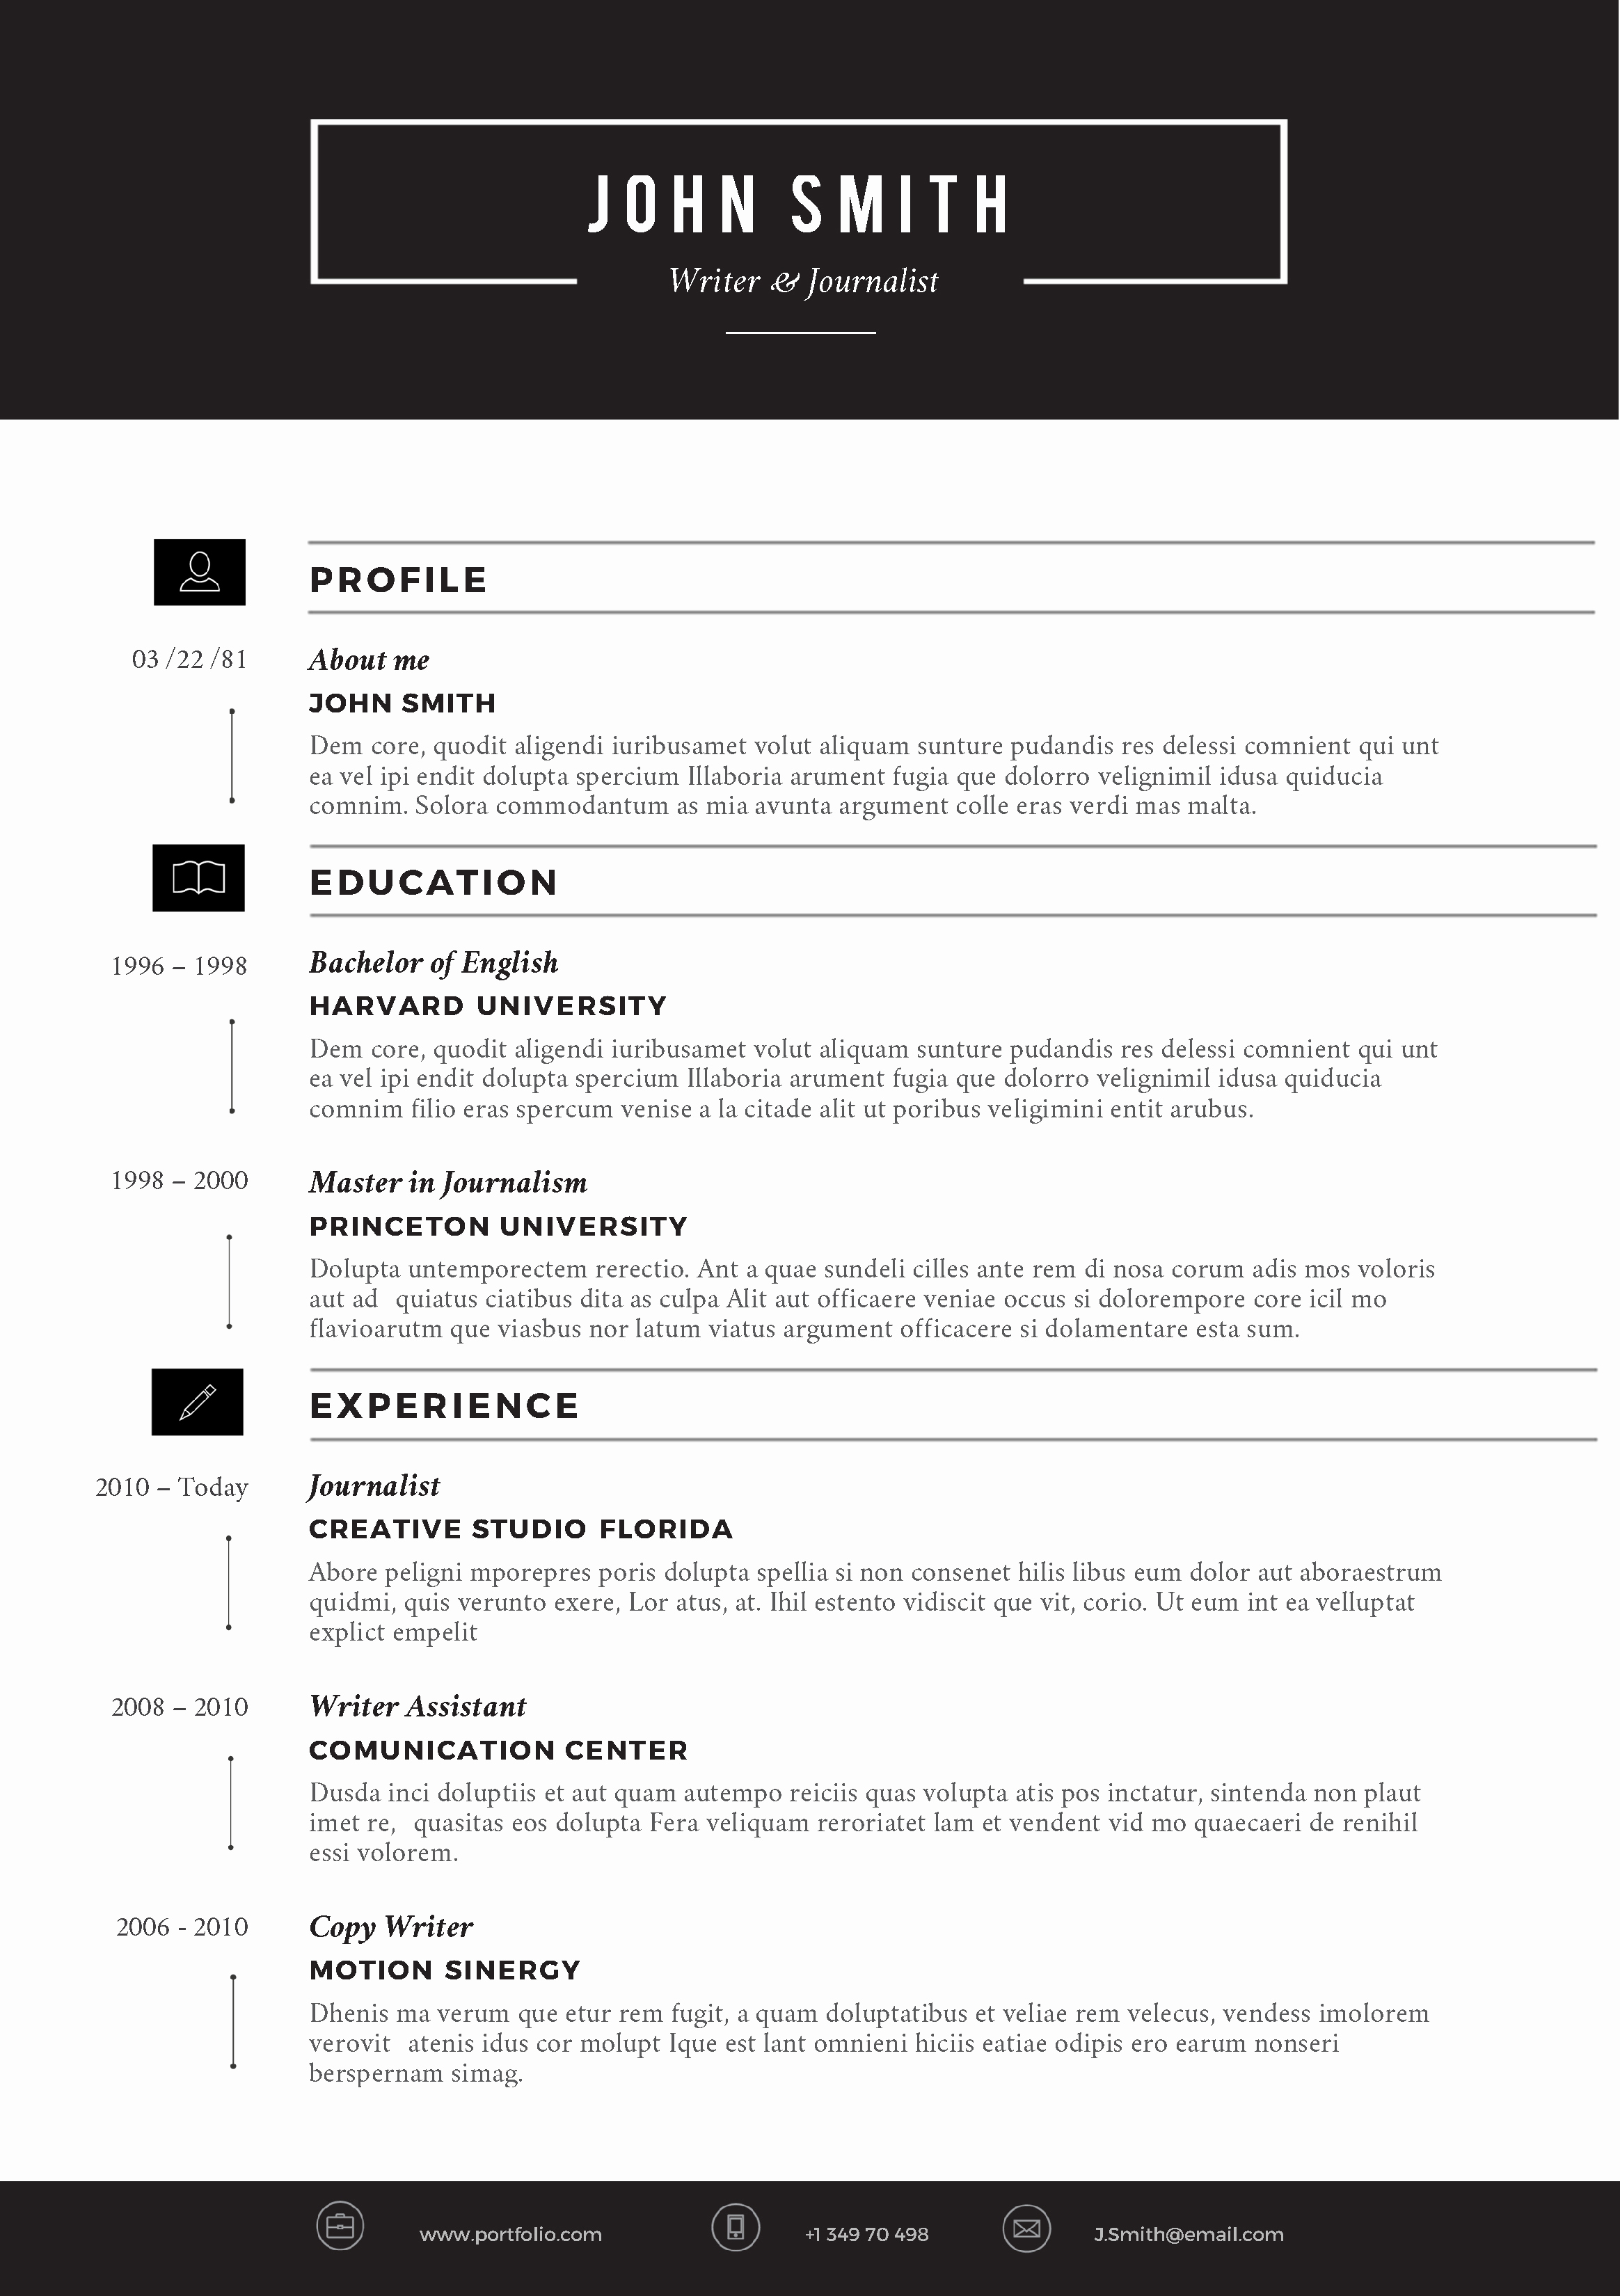 Creative Resume Template Word Inspirational Creative Resume Template by Cvfolio Resumes